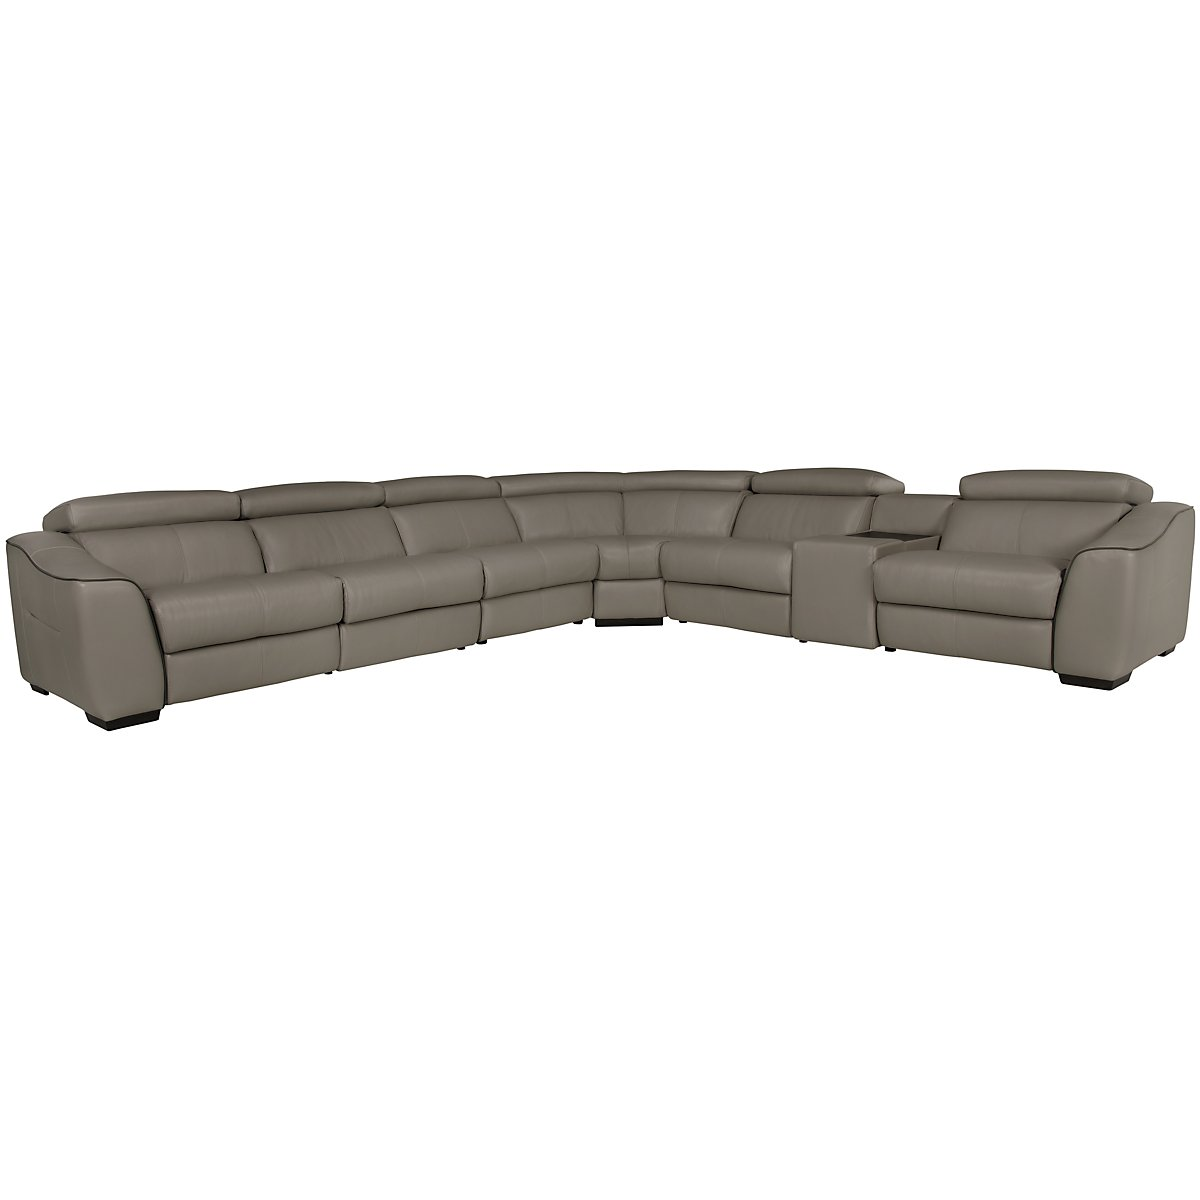 Alessi3 Dark Taupe Leather & Vinyl Large Two-Arm Power Reclining Sectional